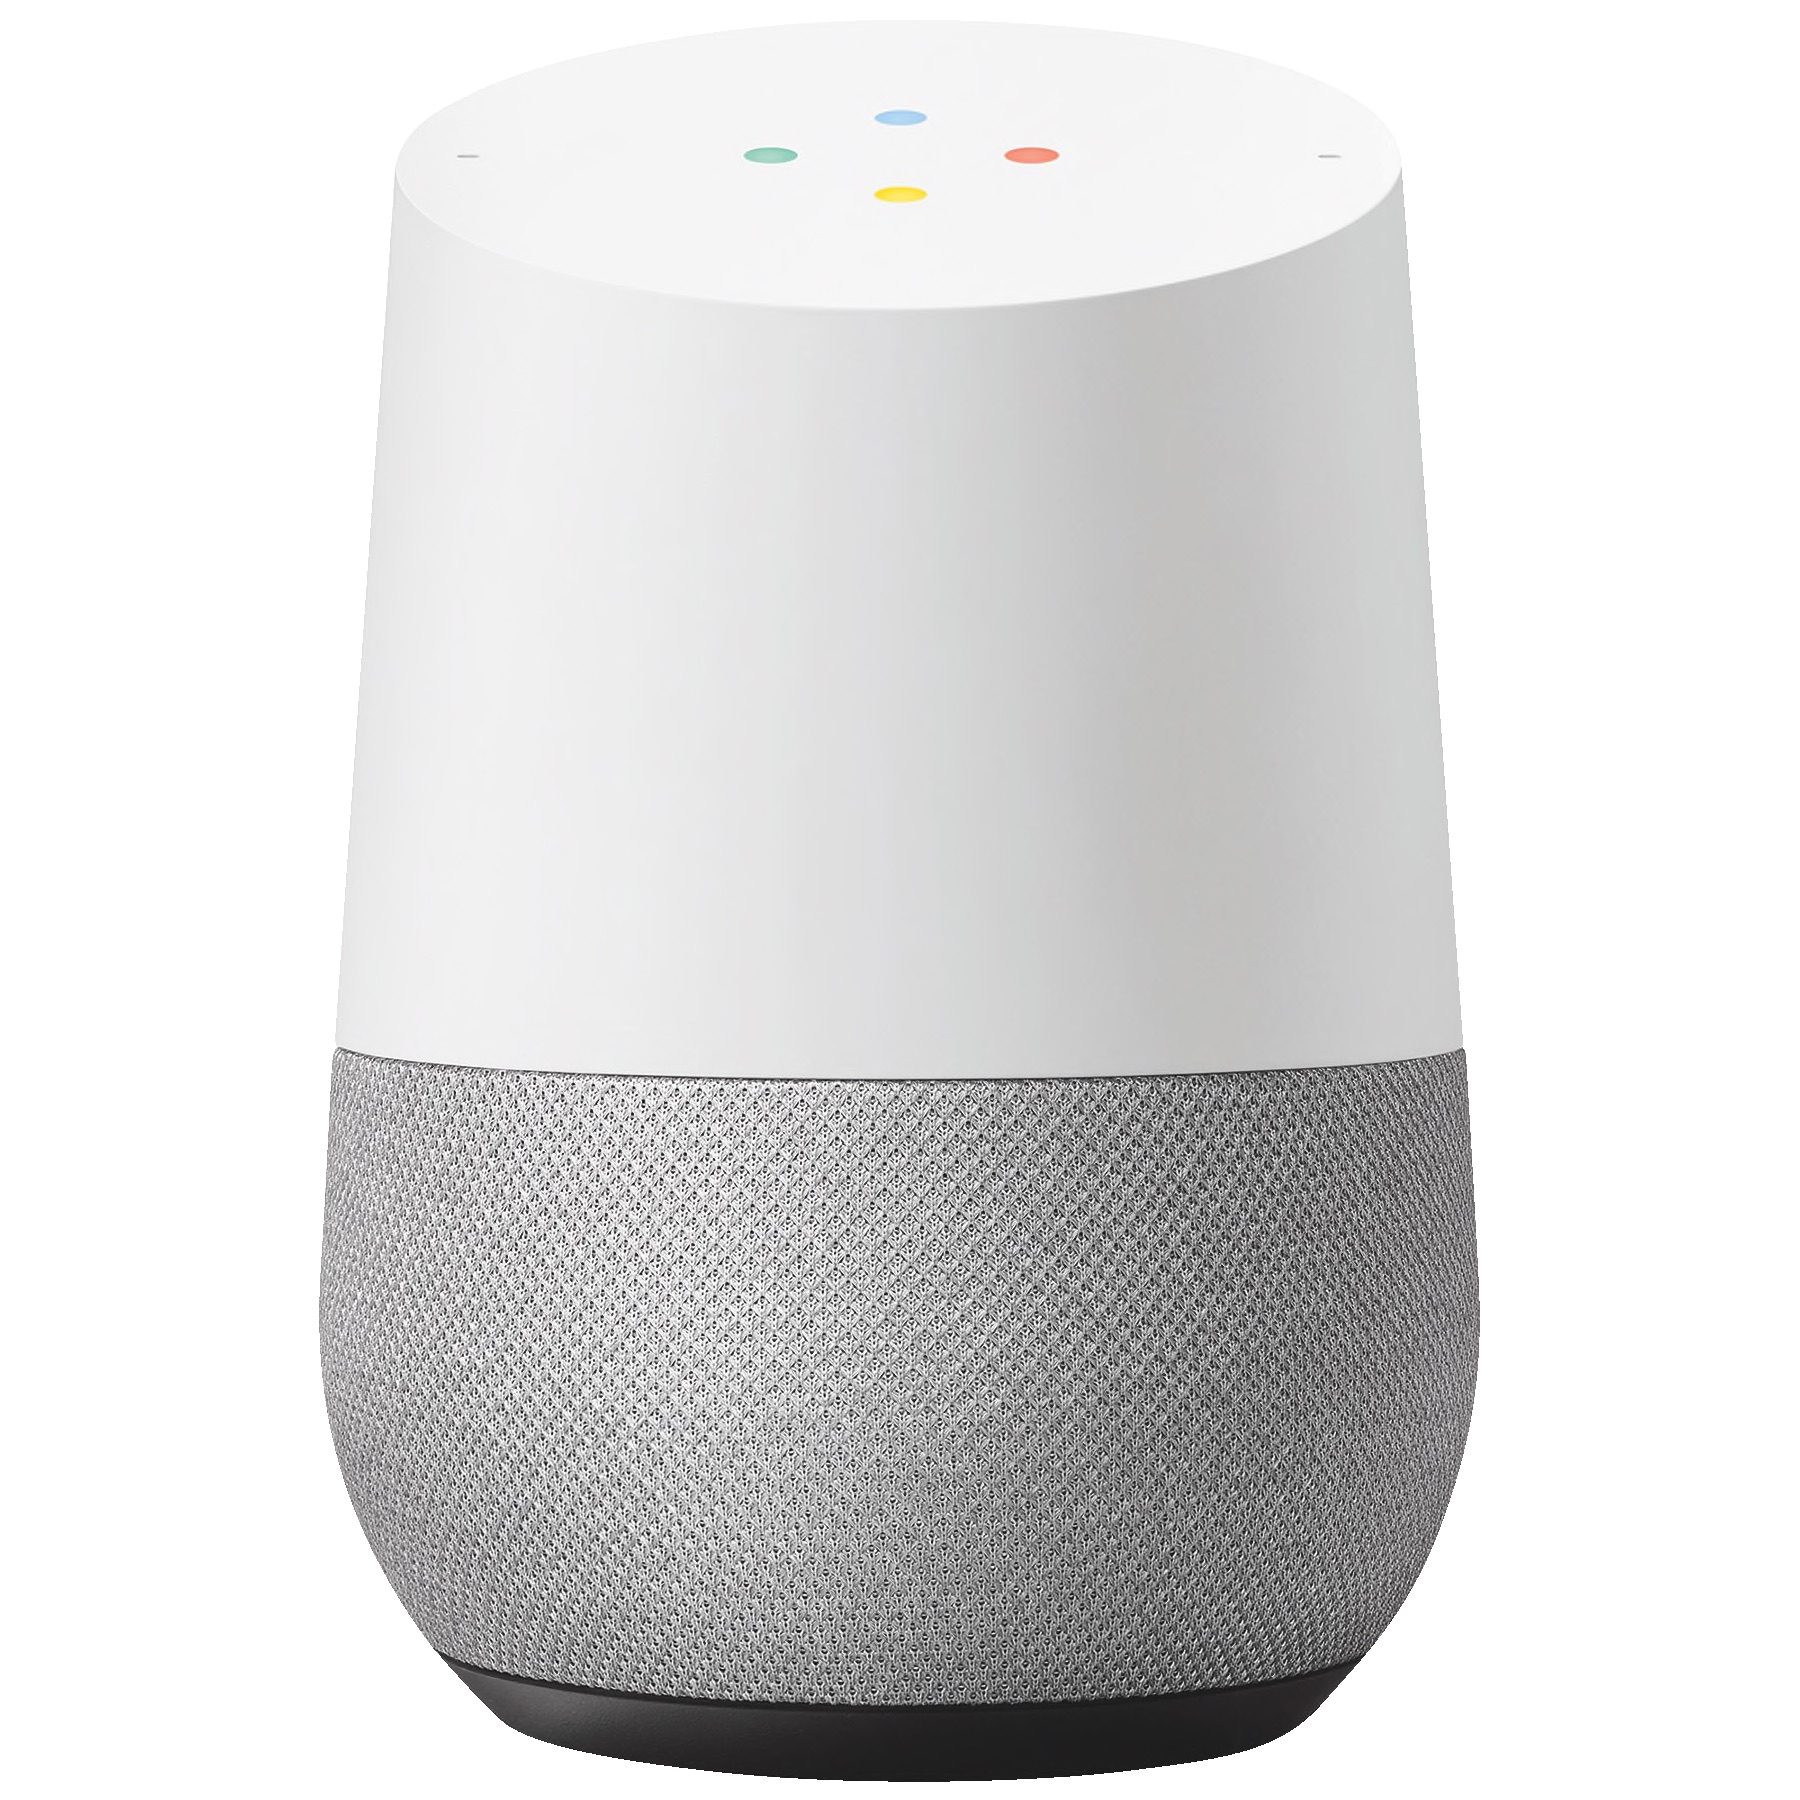 A Guide to Google Home